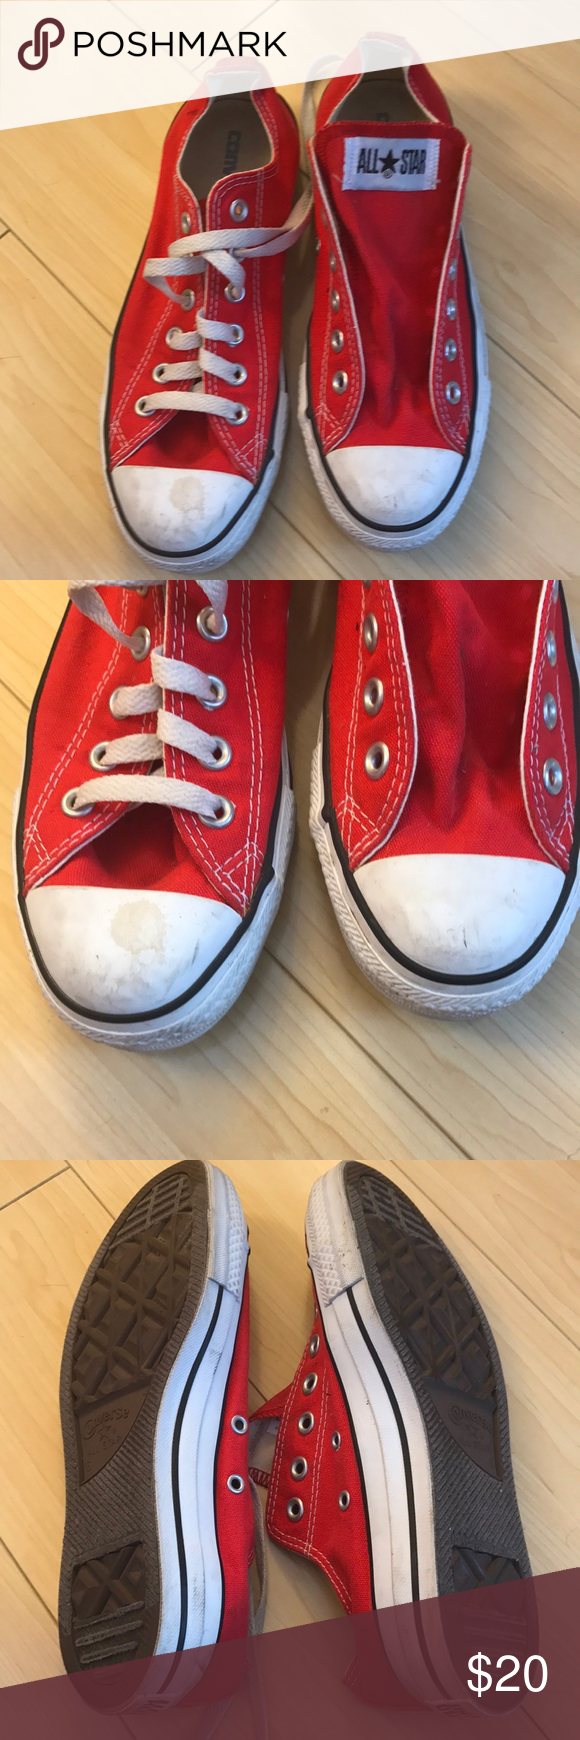 c3f837223e7c Converse All Stars Red low tops canvas sneakers Worn once. One shoe is  missing it s laces. Size 6 men size 8 women! Great shape!!!! Wear on toe as  pictured.